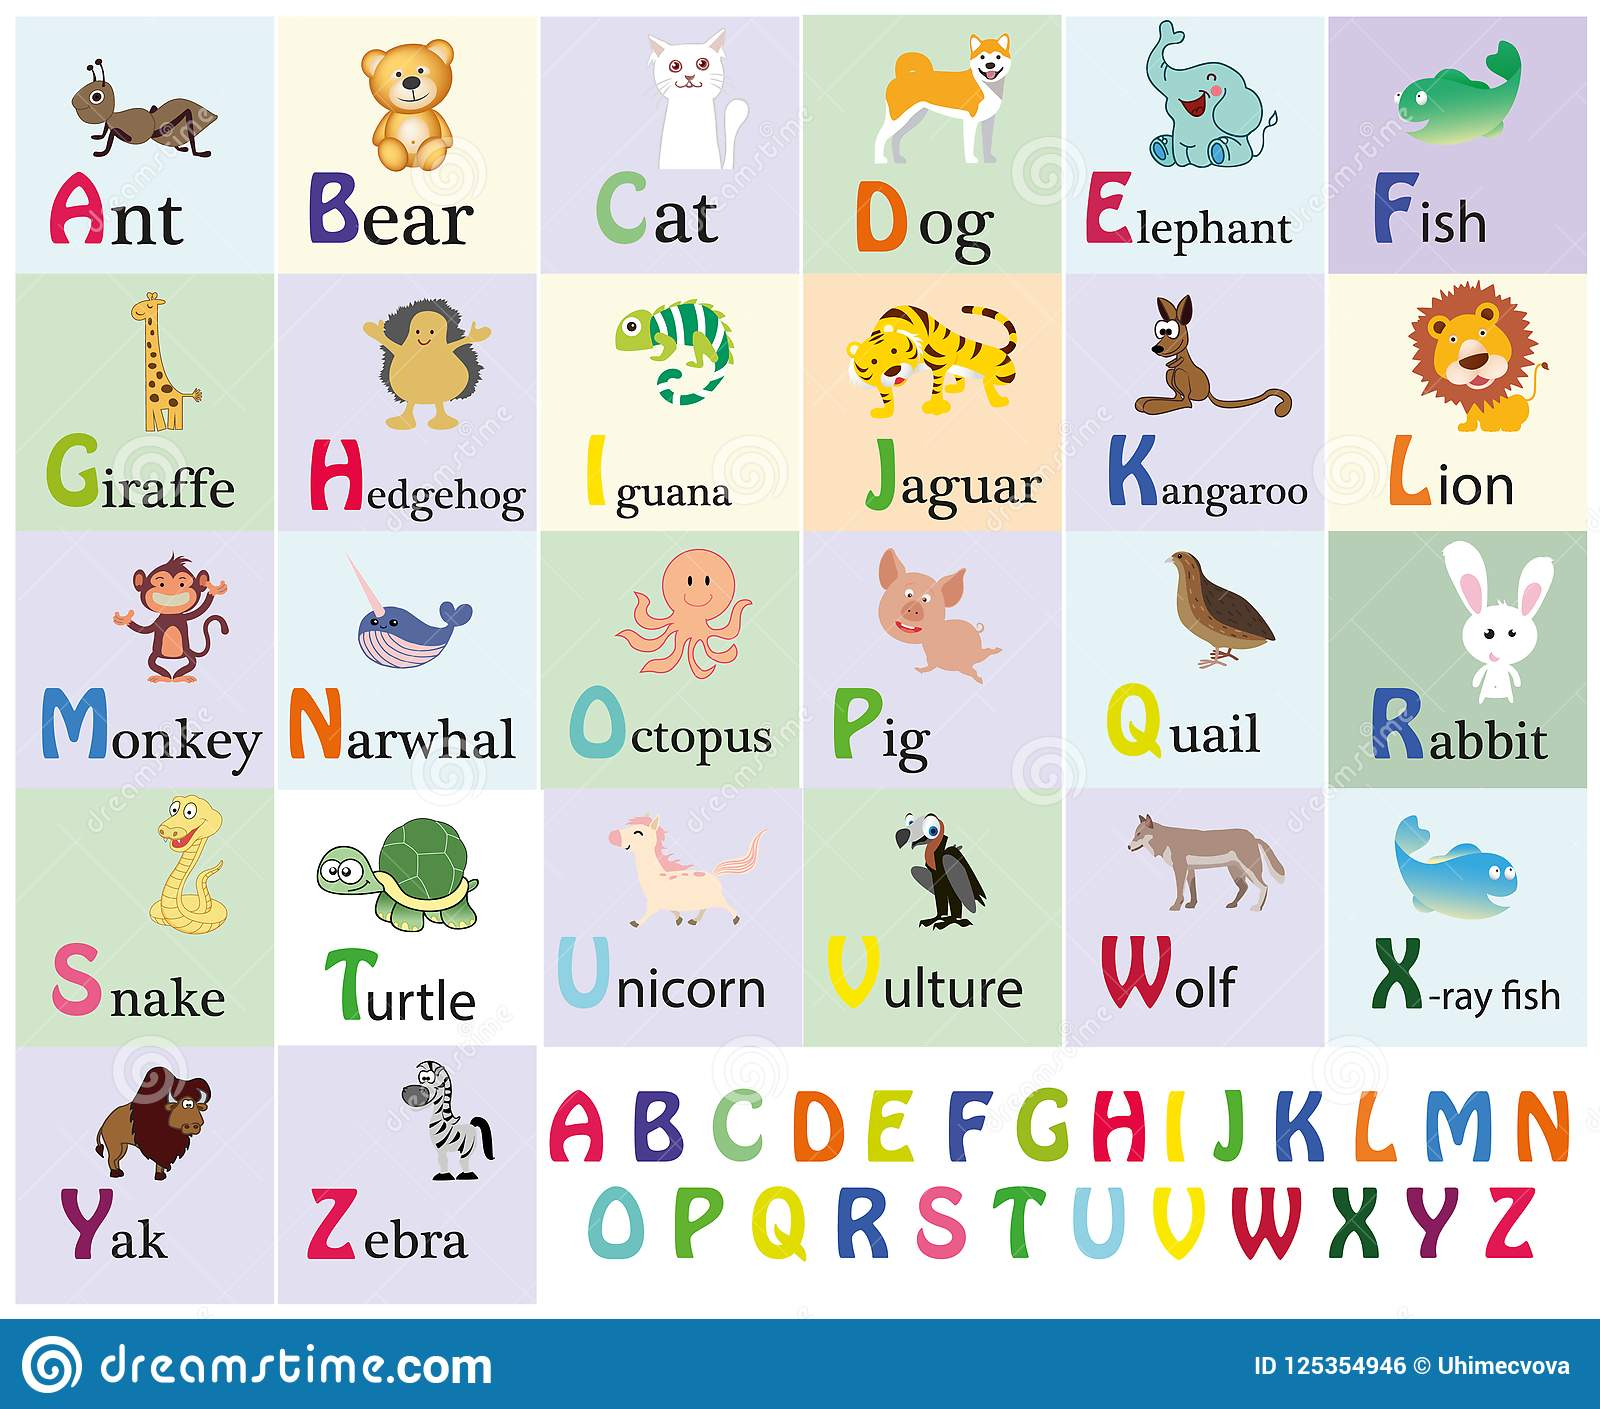 Zoo Alphabet Animal Alphabet Letters From A To Z Cartoon Cute